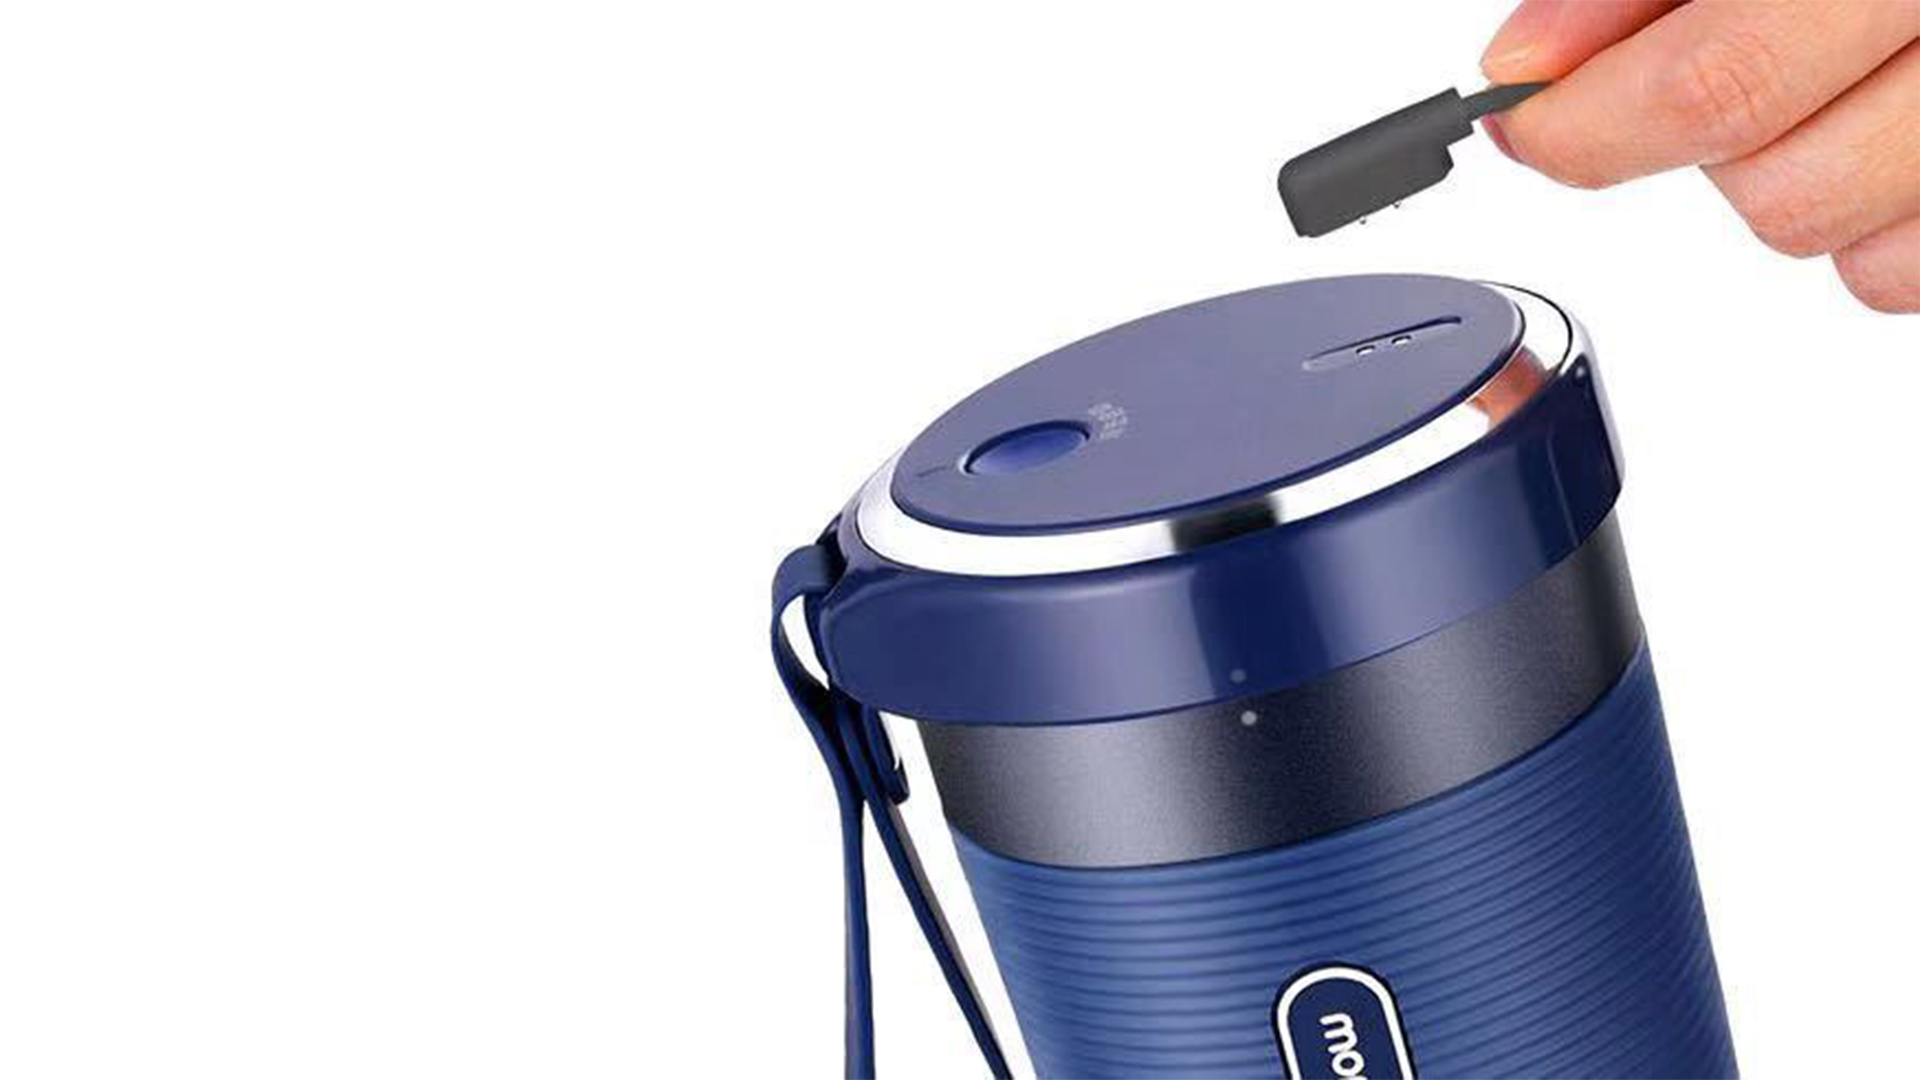 Portable Juicer 15 - Sneapy